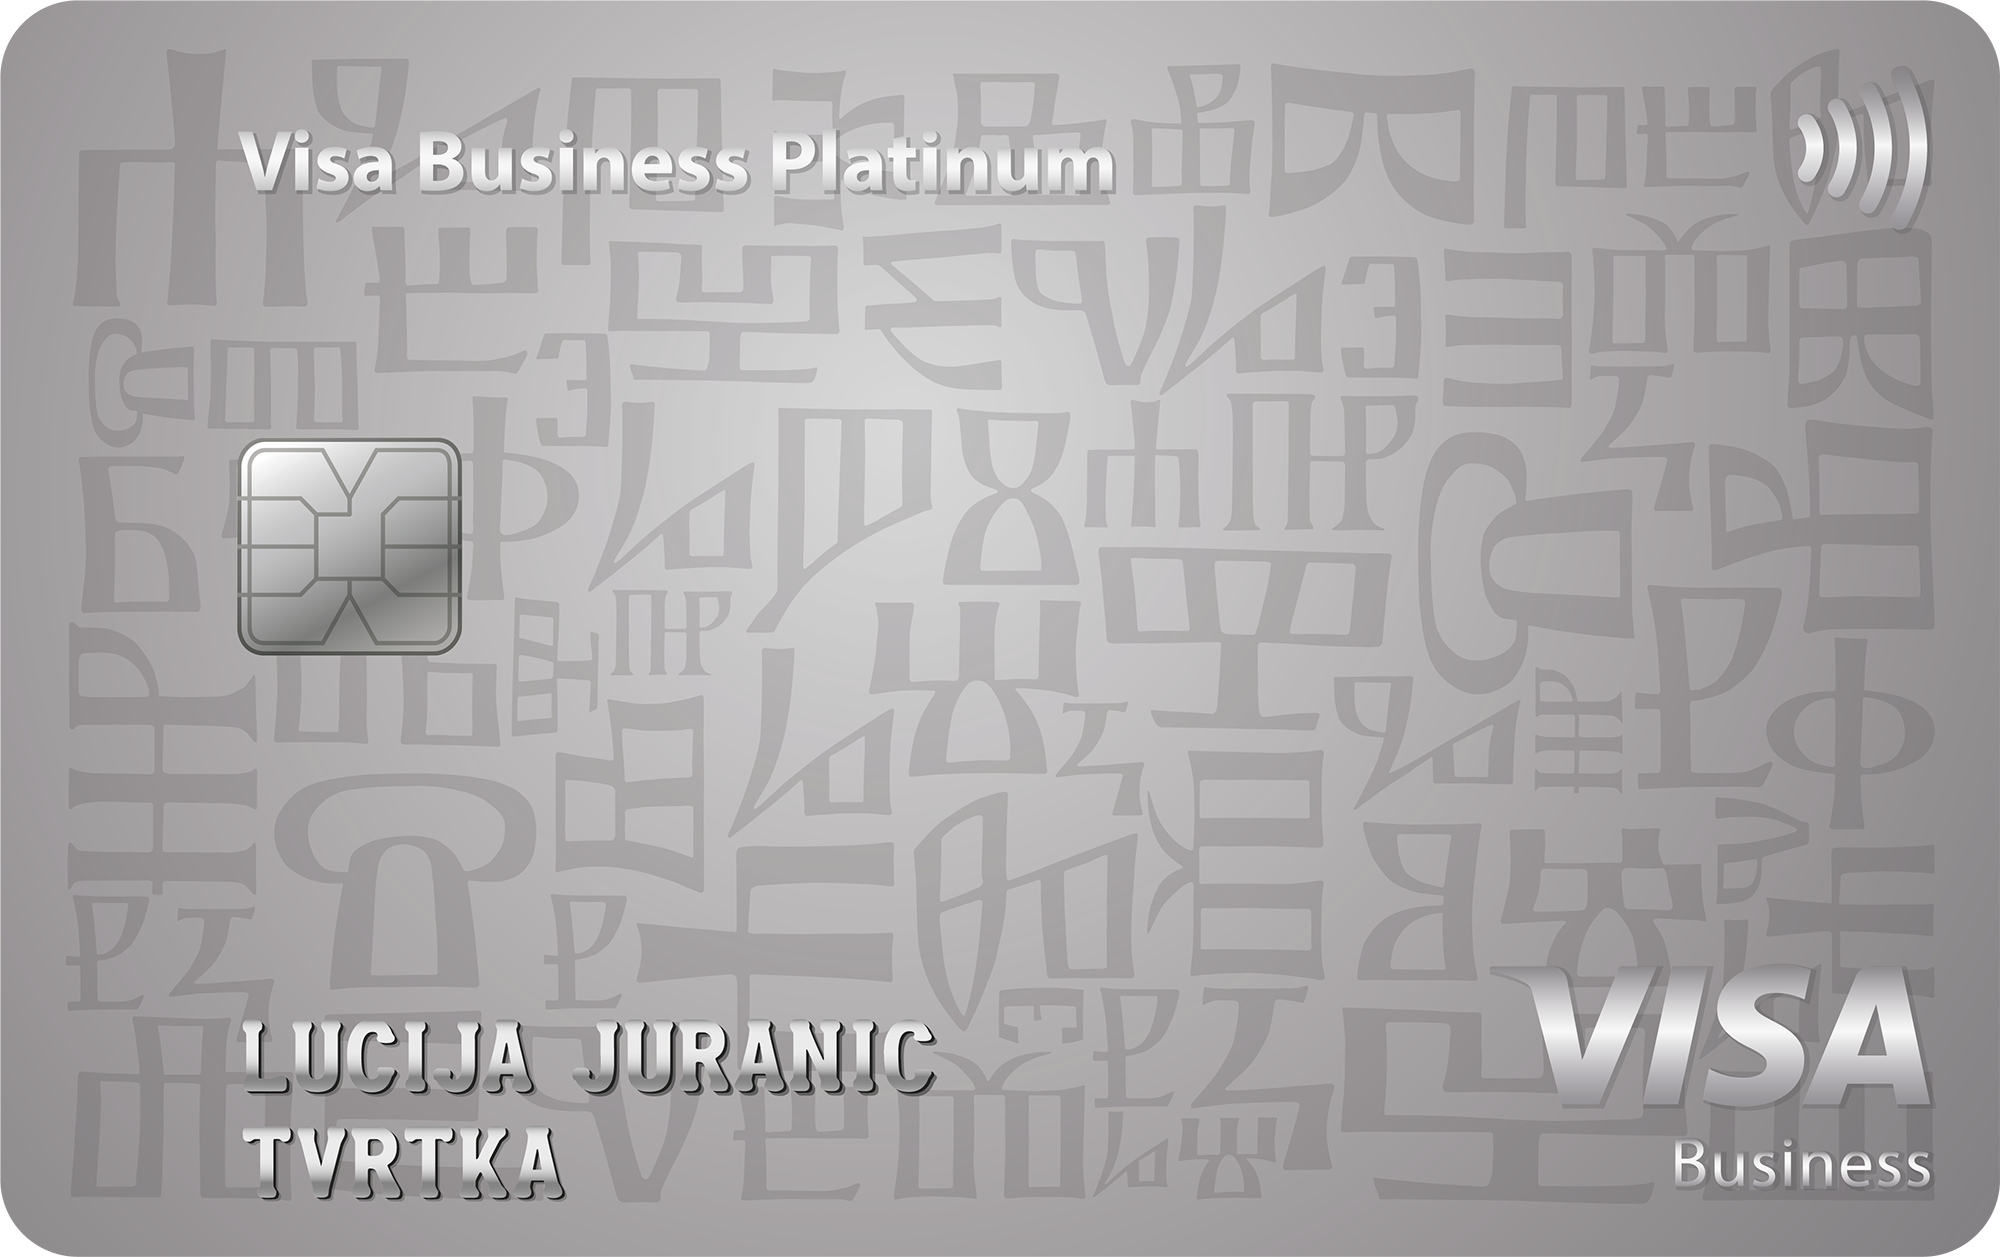 Visa Business Platinum